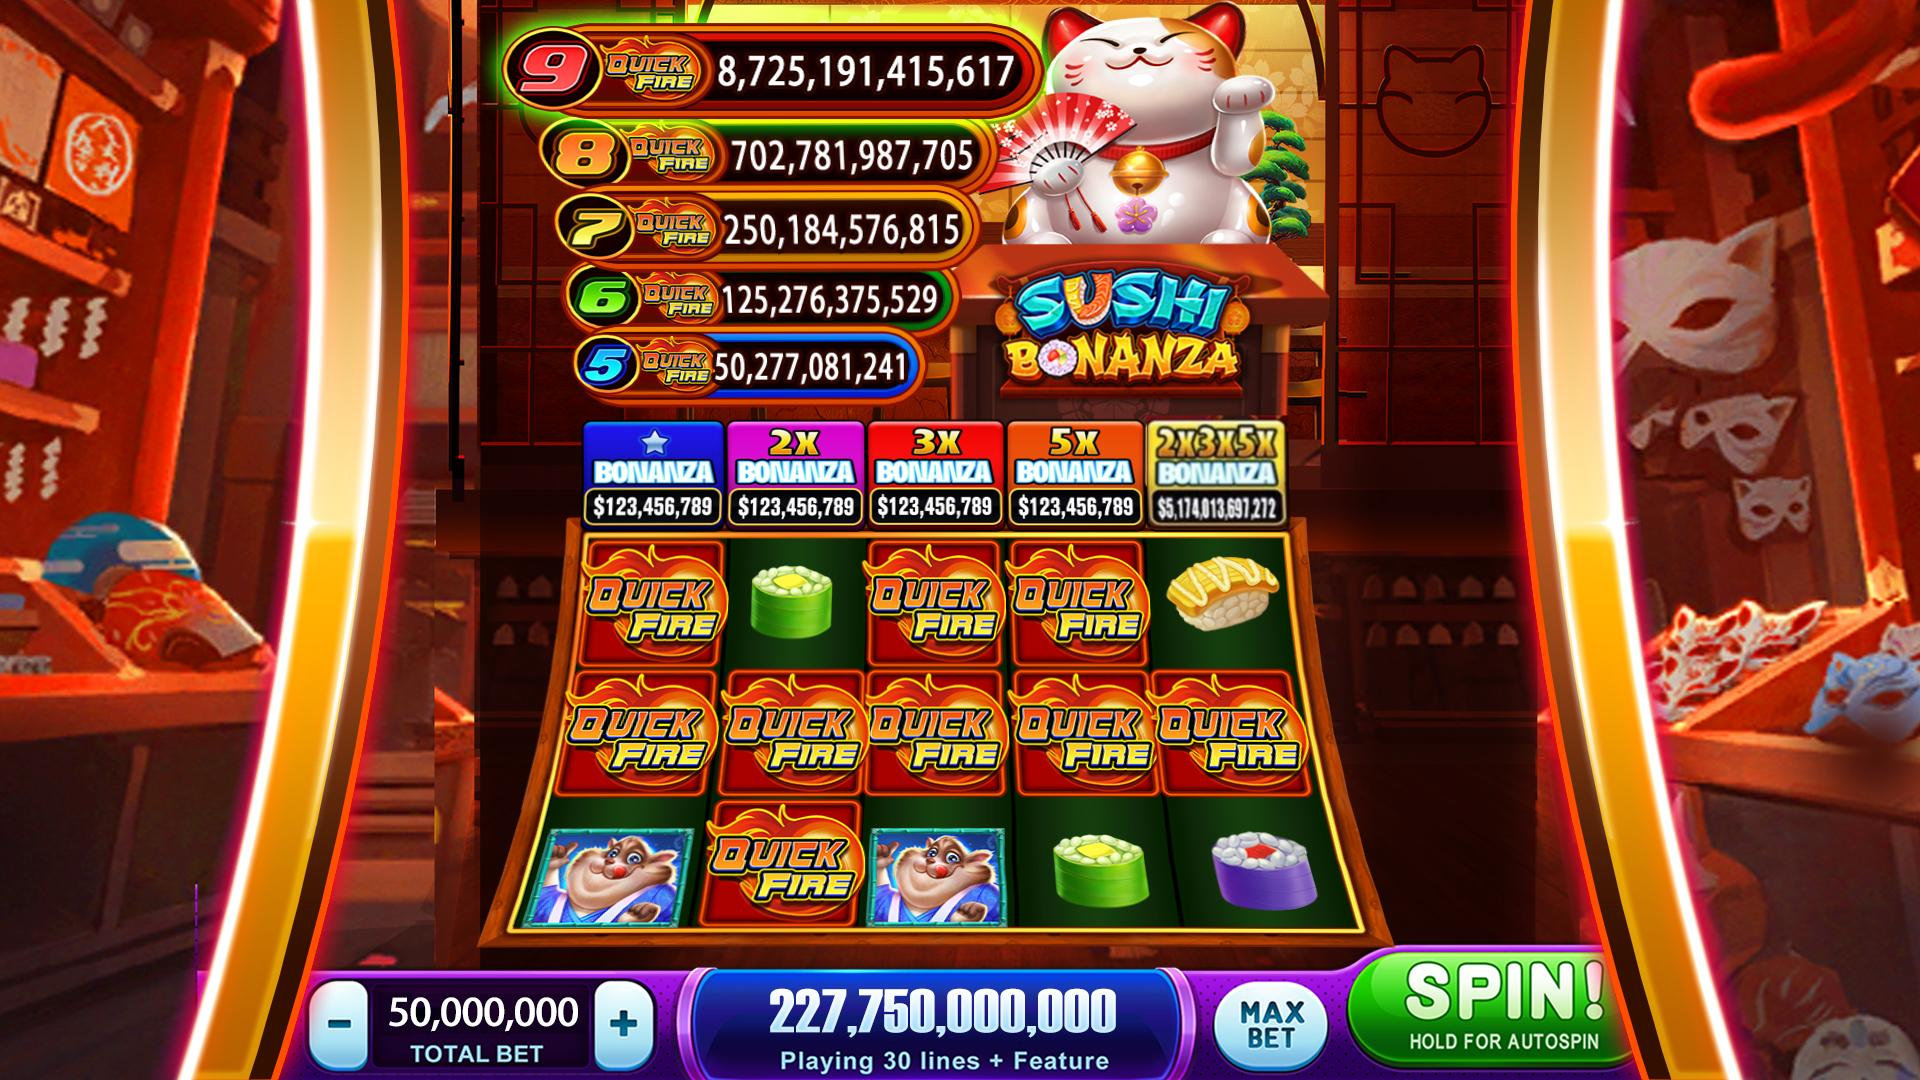 Double Win Casino Slots - Free Video Slots Games for Android - APK Download